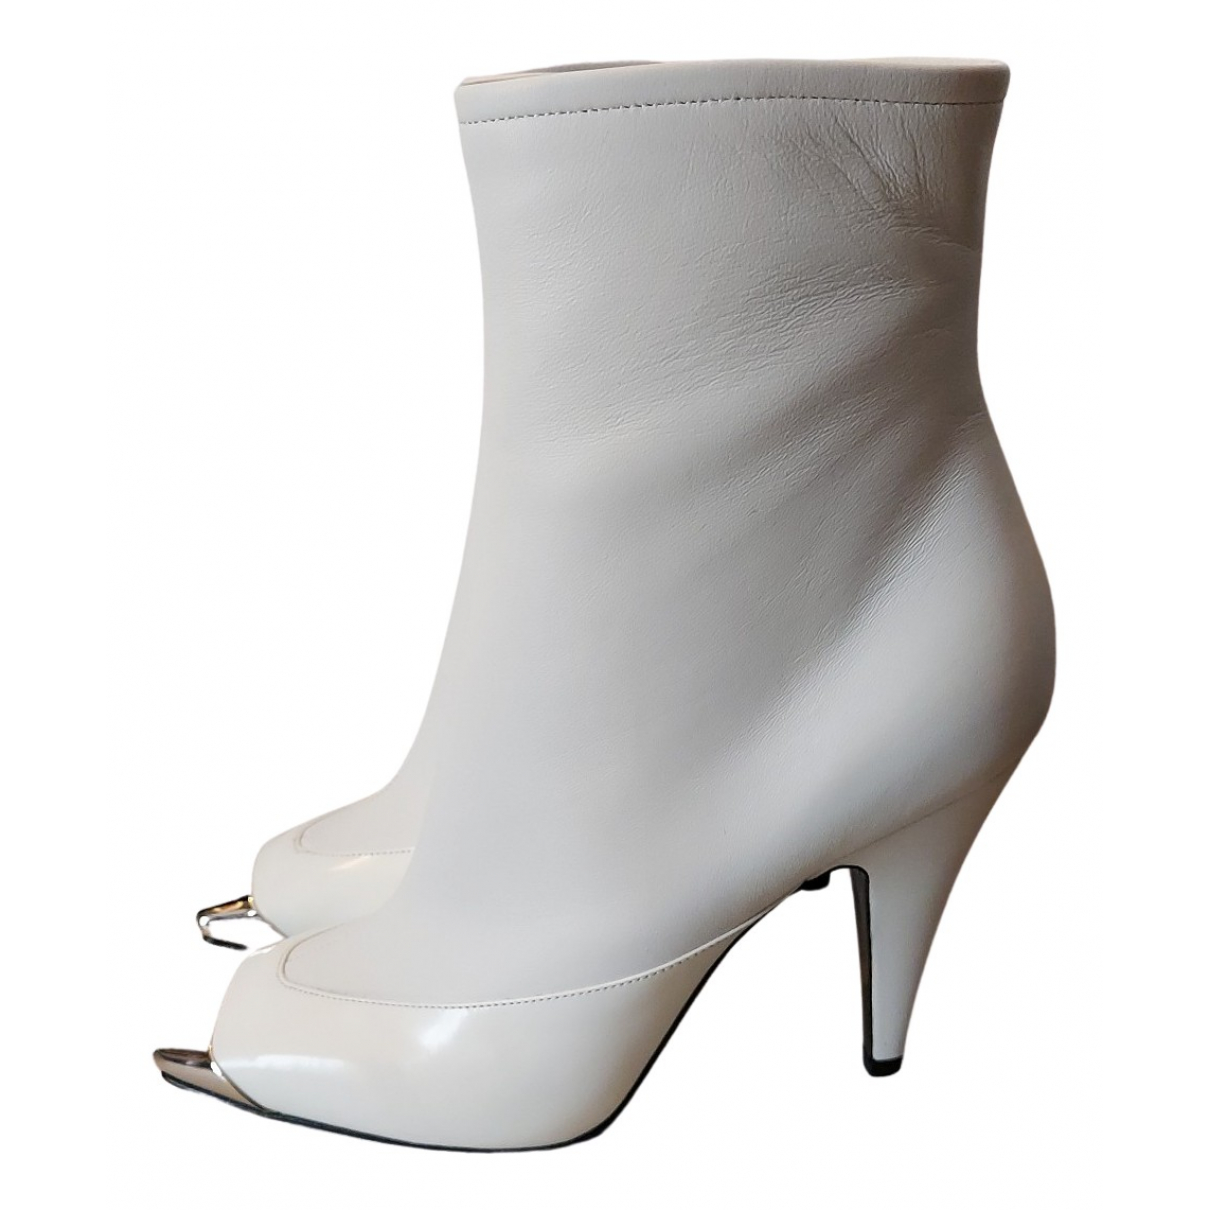 Emilio Pucci N White Leather Ankle boots for Women 38 EU